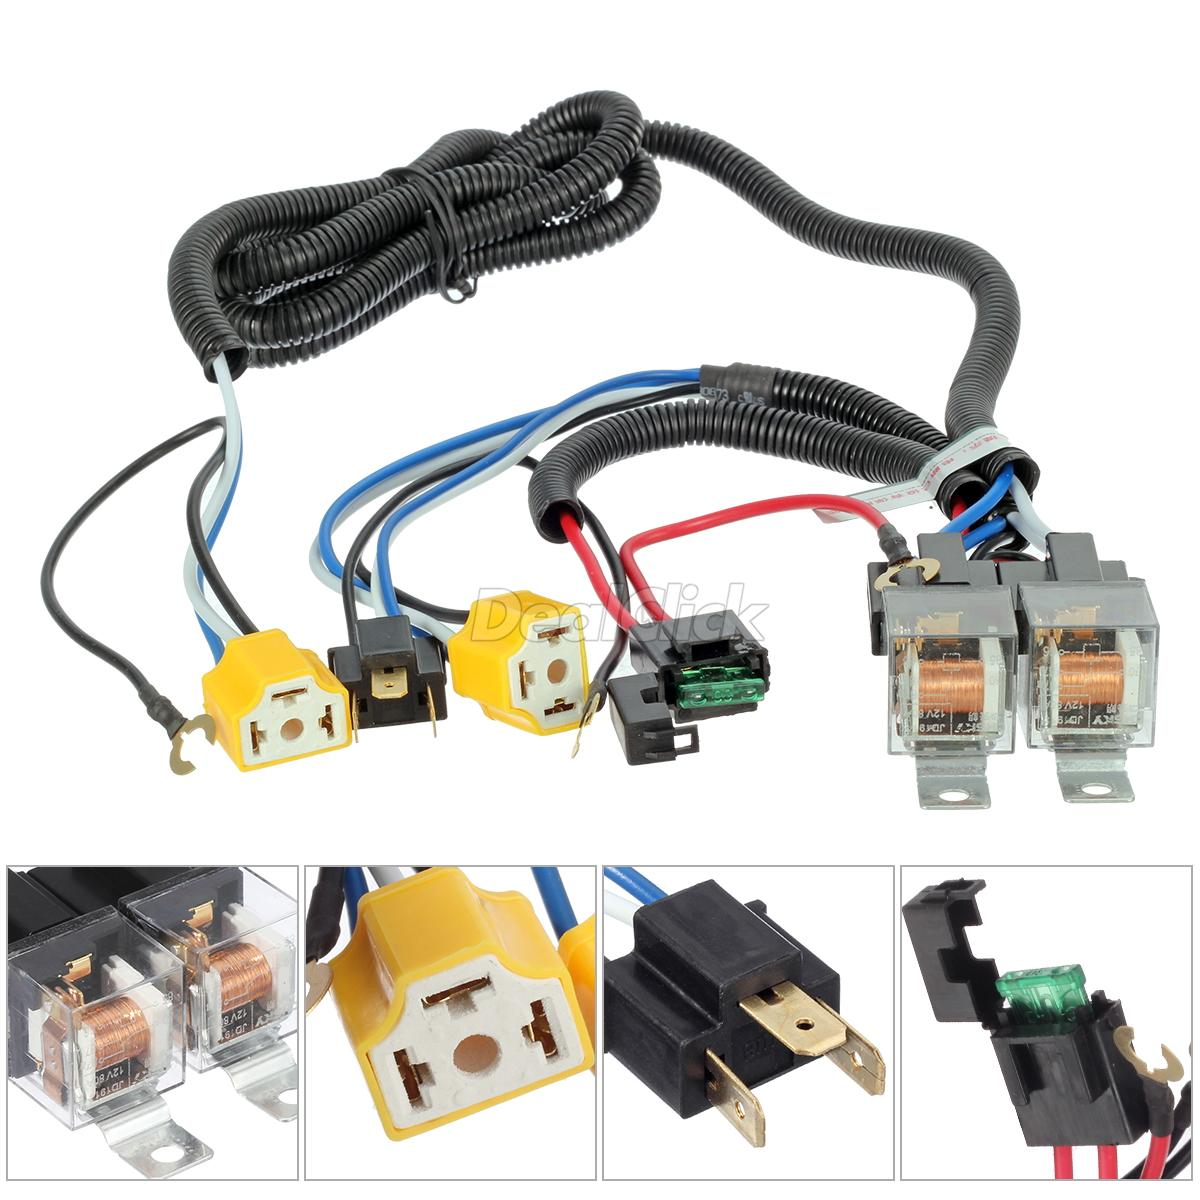 hight resolution of headlamp wire harness wiring diagrams termsceramic h4 headlight headlamp h4 light bulb relay wiring harness headlight